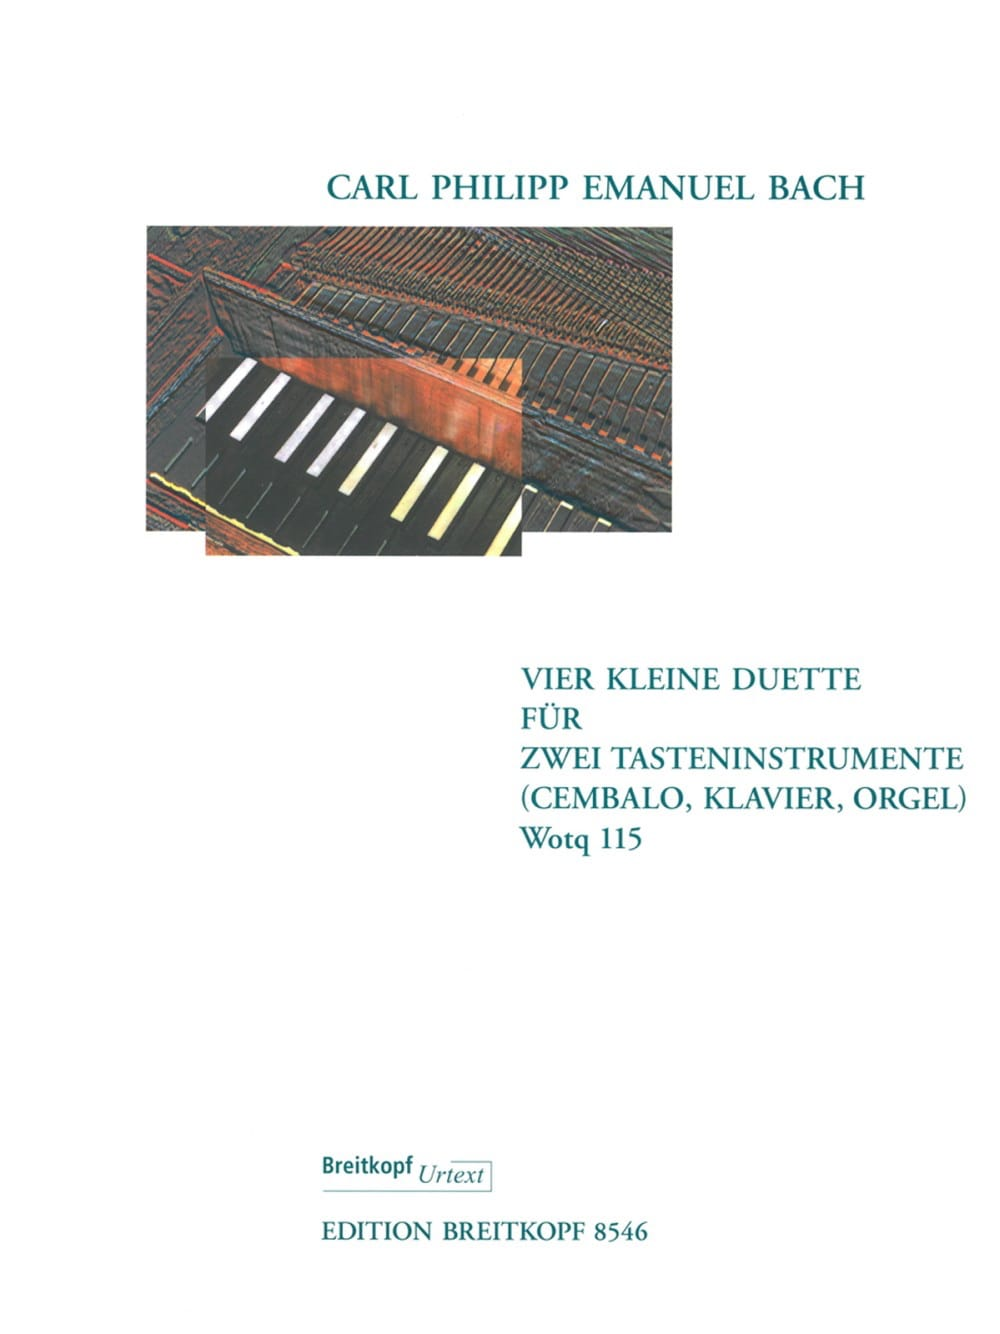 Carl-Philipp Emanuel Bach - 4 Small Duets Wotq 115. 2 Harpsichords - Partition - di-arezzo.com